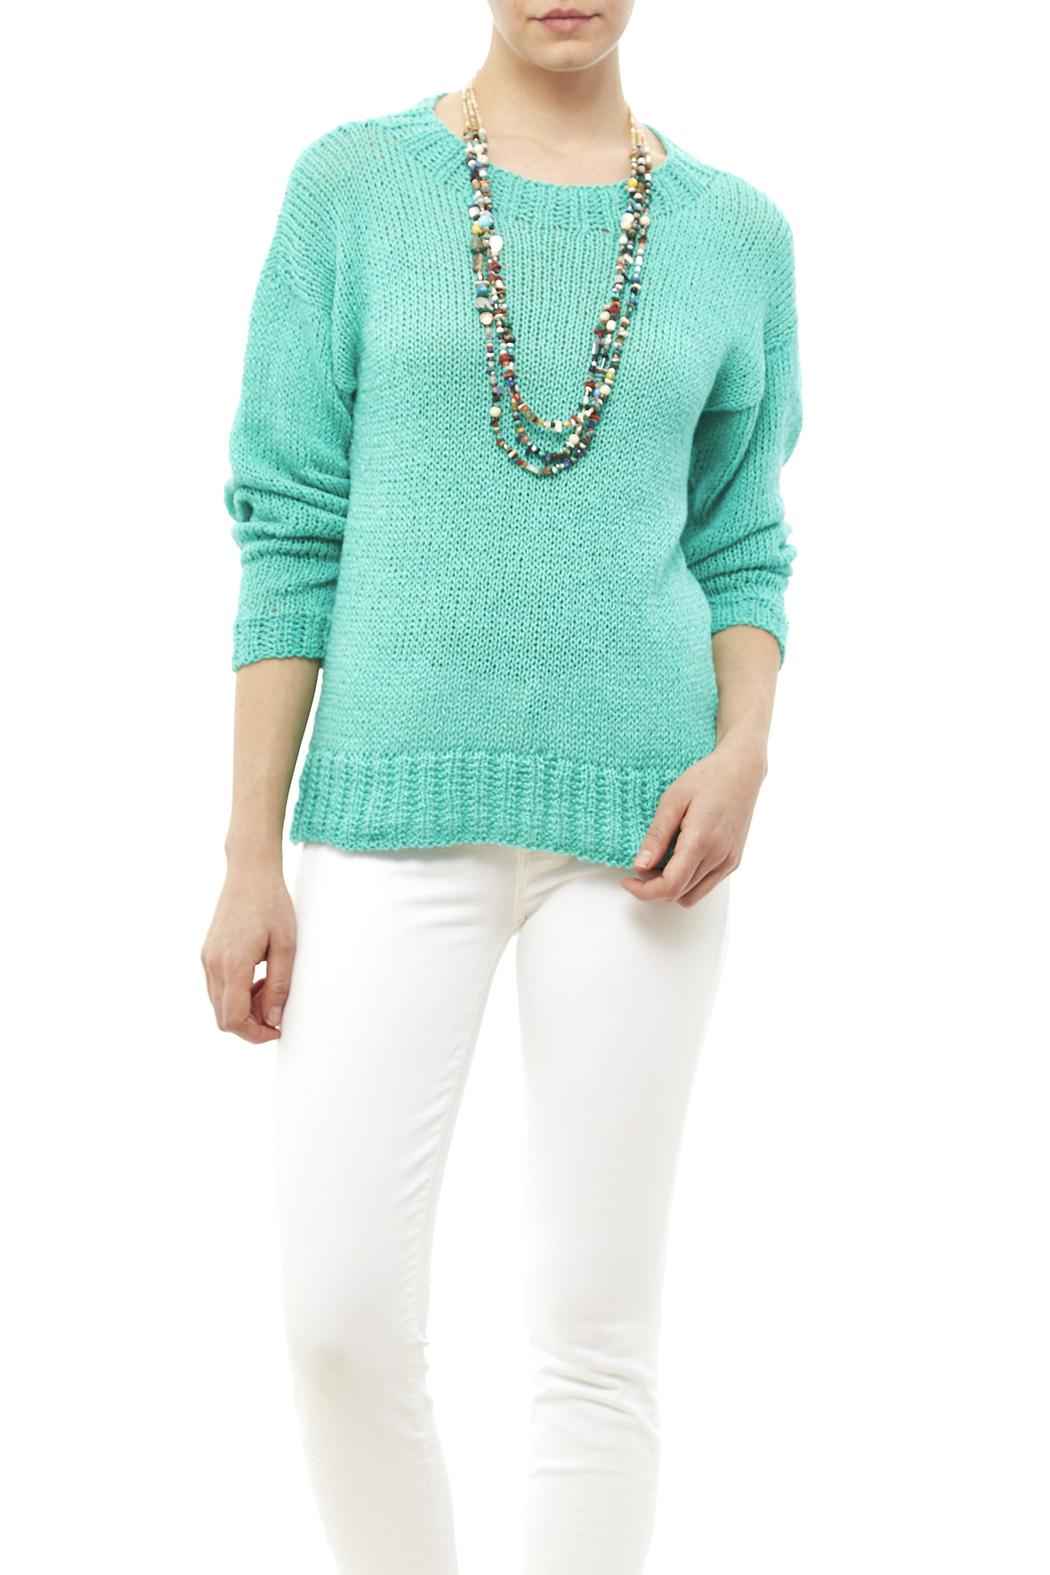 DC KNITS Comfy Cotton Turquoise Sweater - Main Image